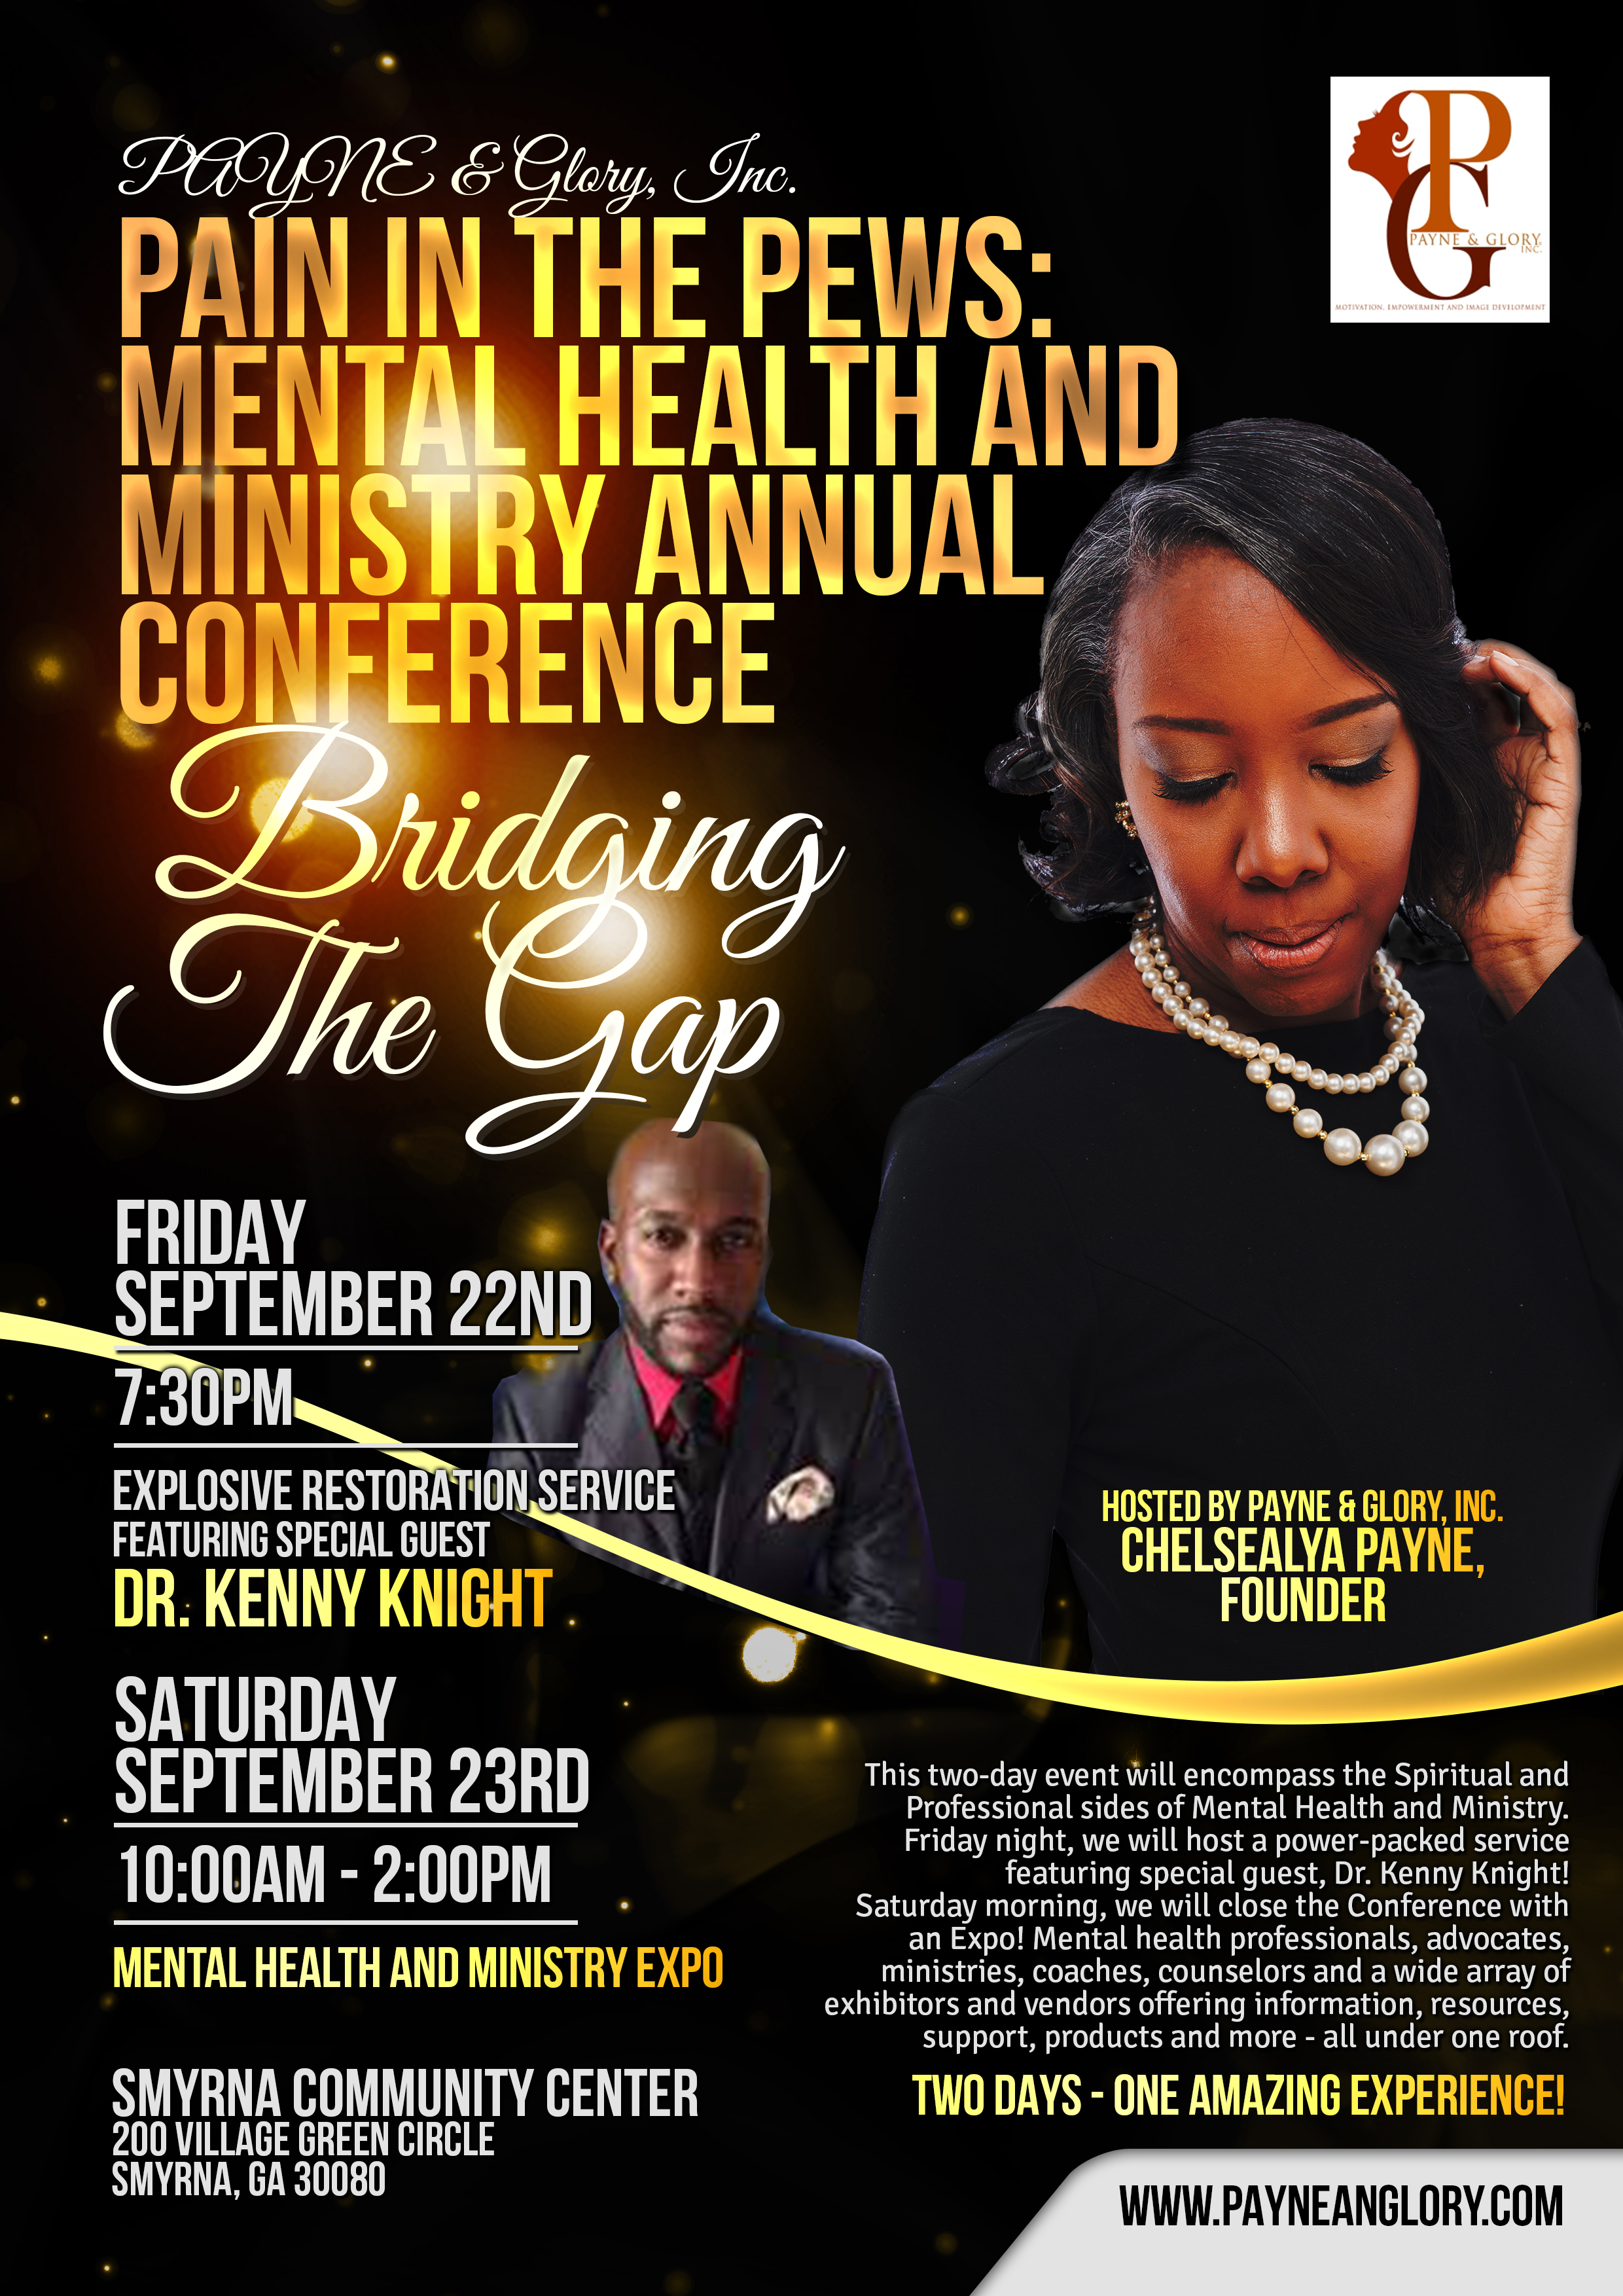 Pain in the Pews Mental Health And Ministry Annual Conference